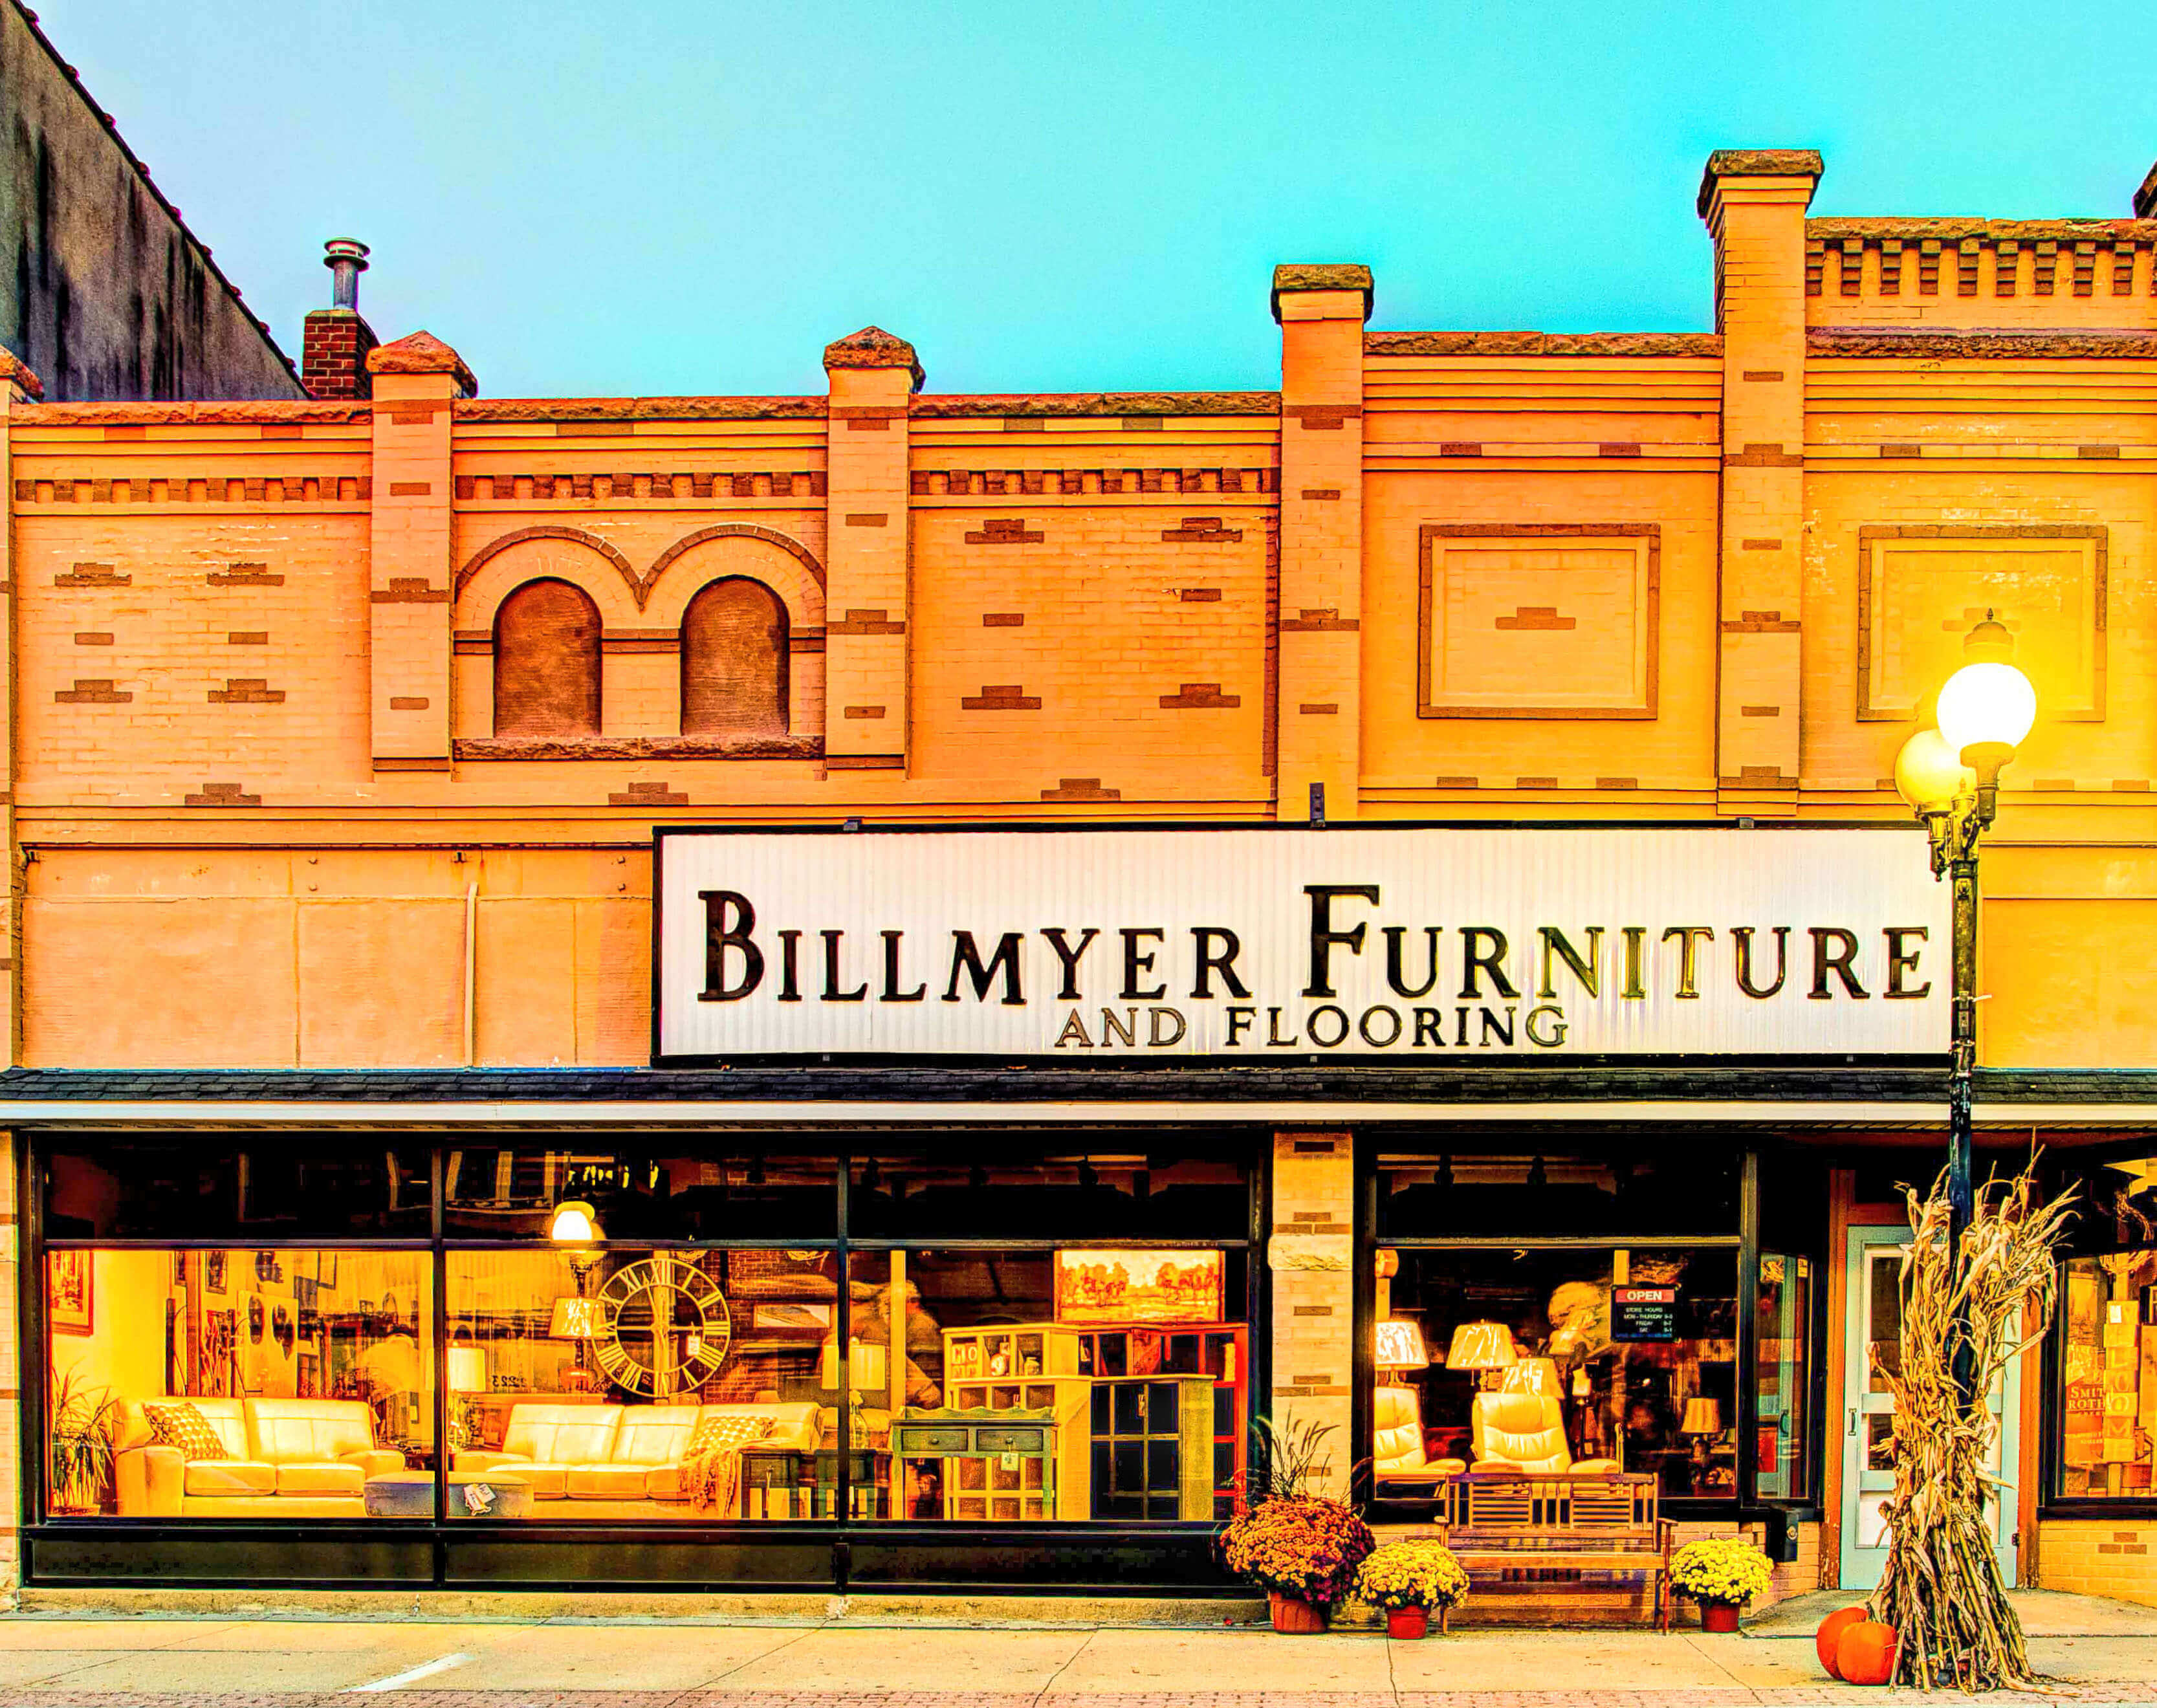 Billmyer Furniture & Flooring